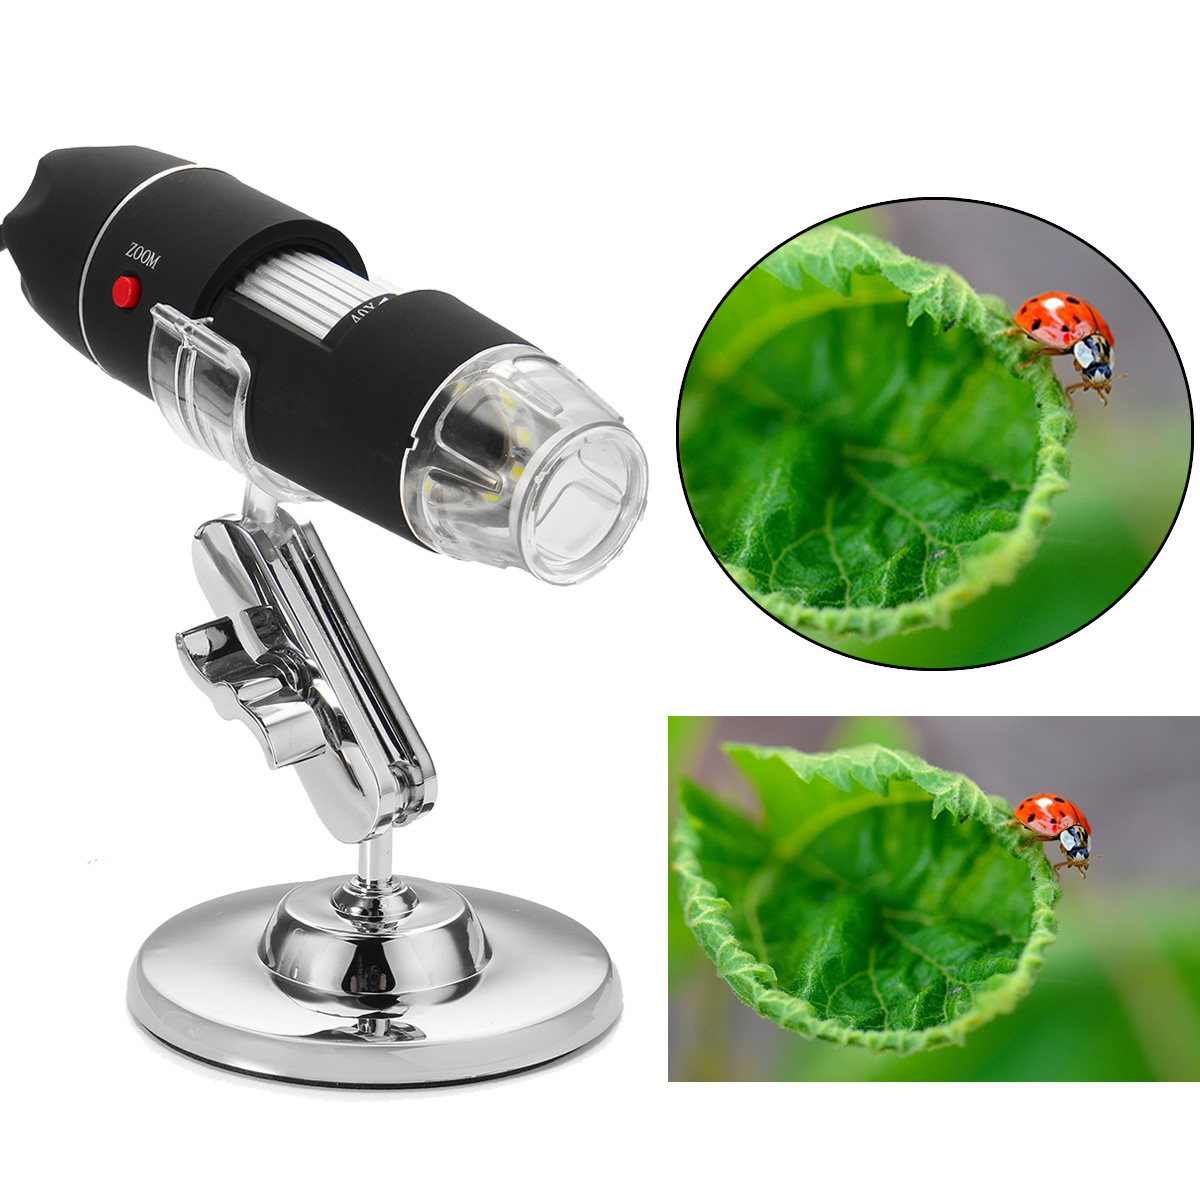 2MP 1600X 8 LED USB2.0 Zoom Digital Microscope Hand held Biological Endoscope Vision Camera Video Stand arrival 2 0m pixels usb hand held microscope with 8 led lights se v3 usb500 300